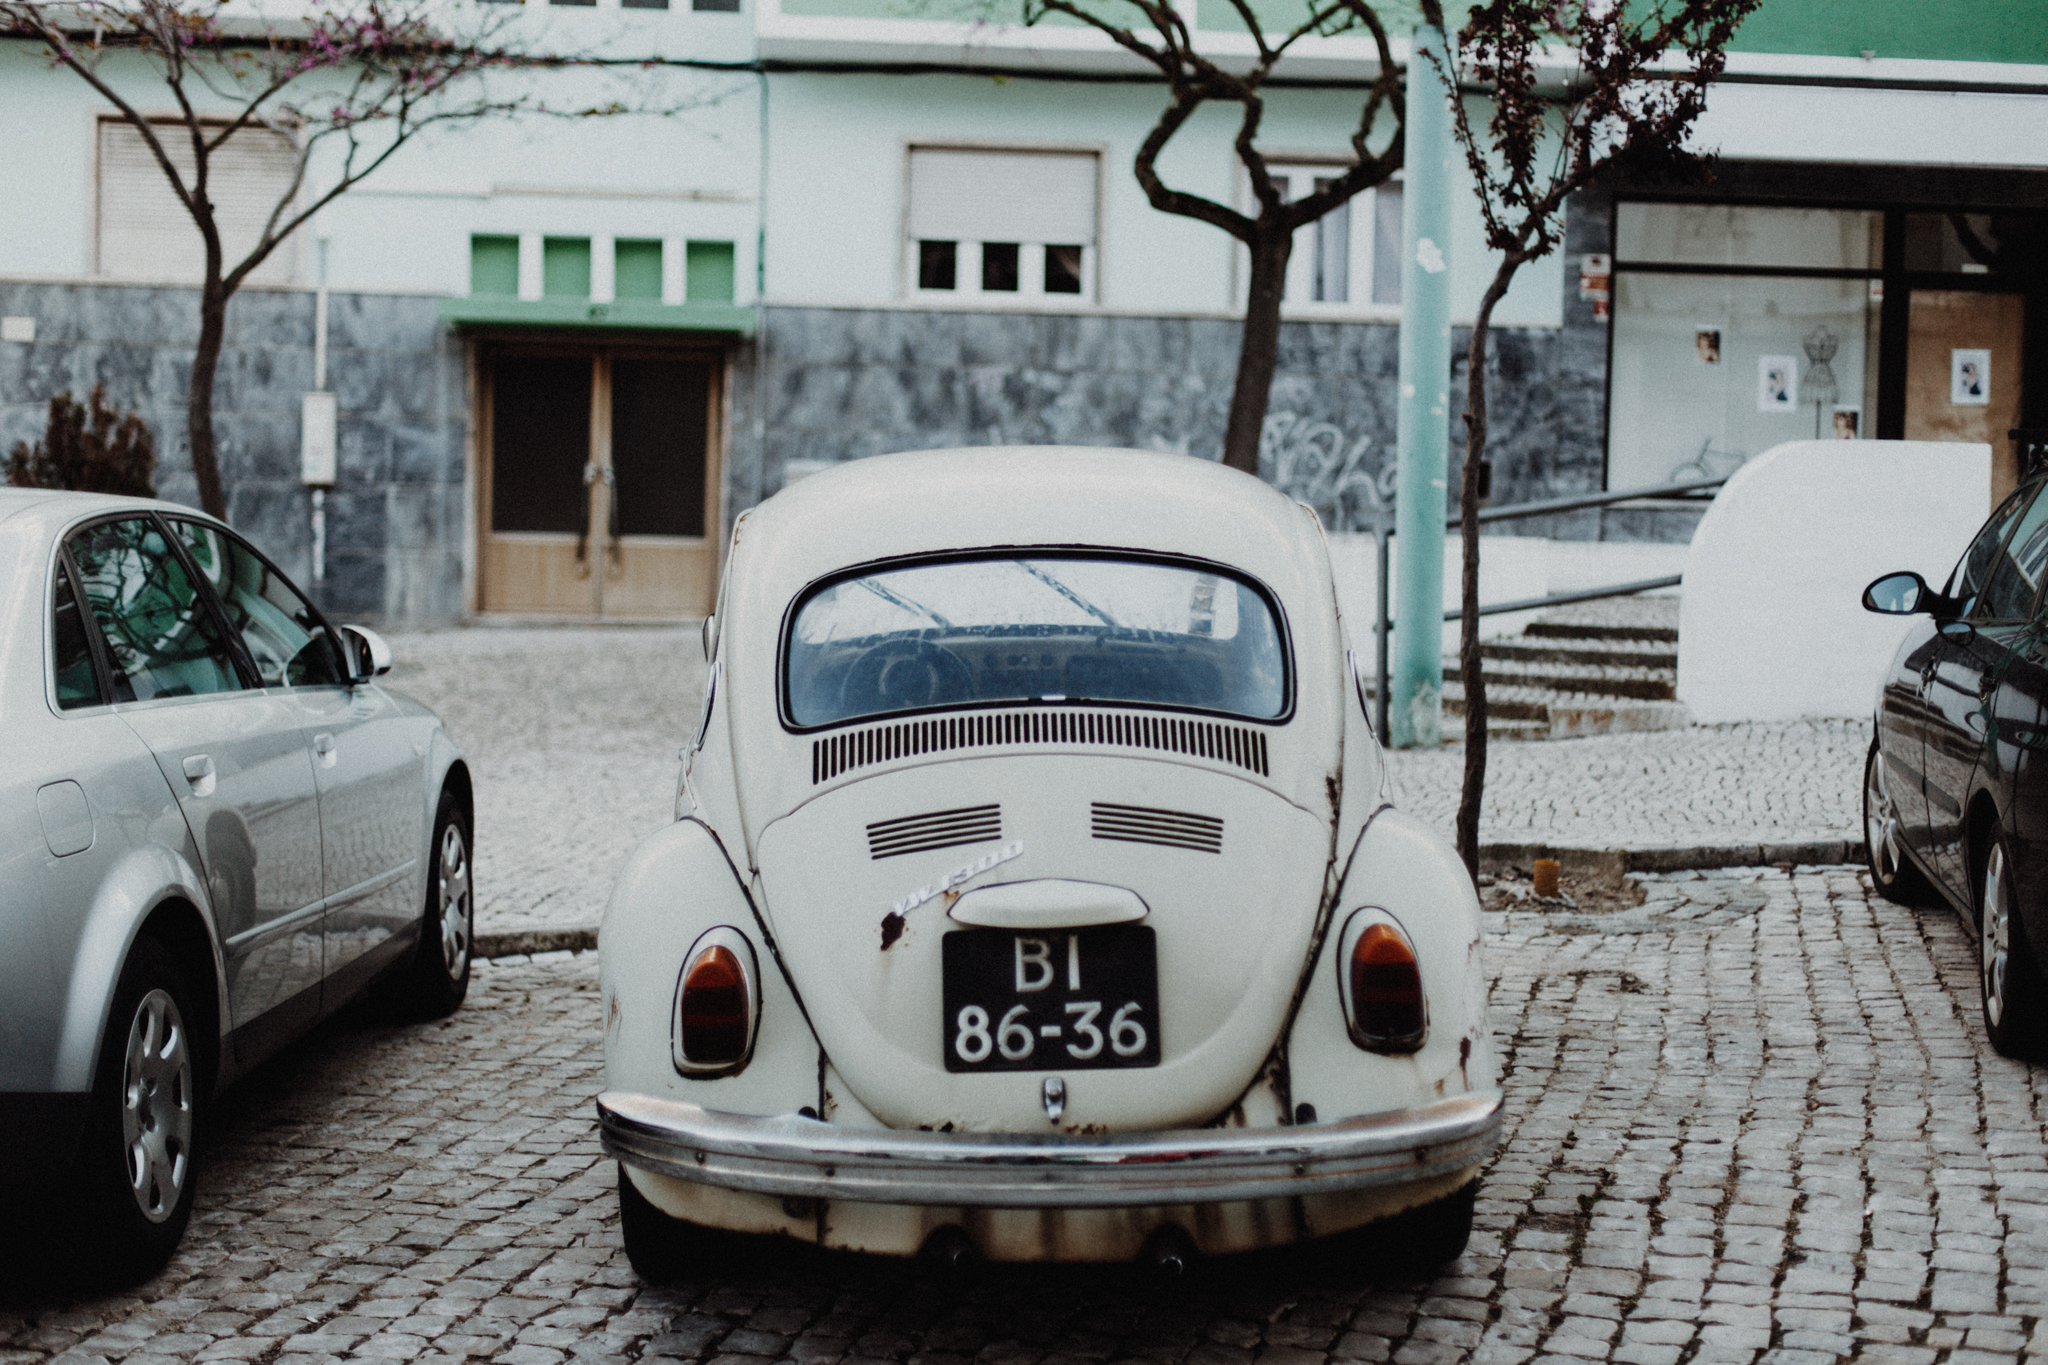 old style bug car in cacilhas in portugal